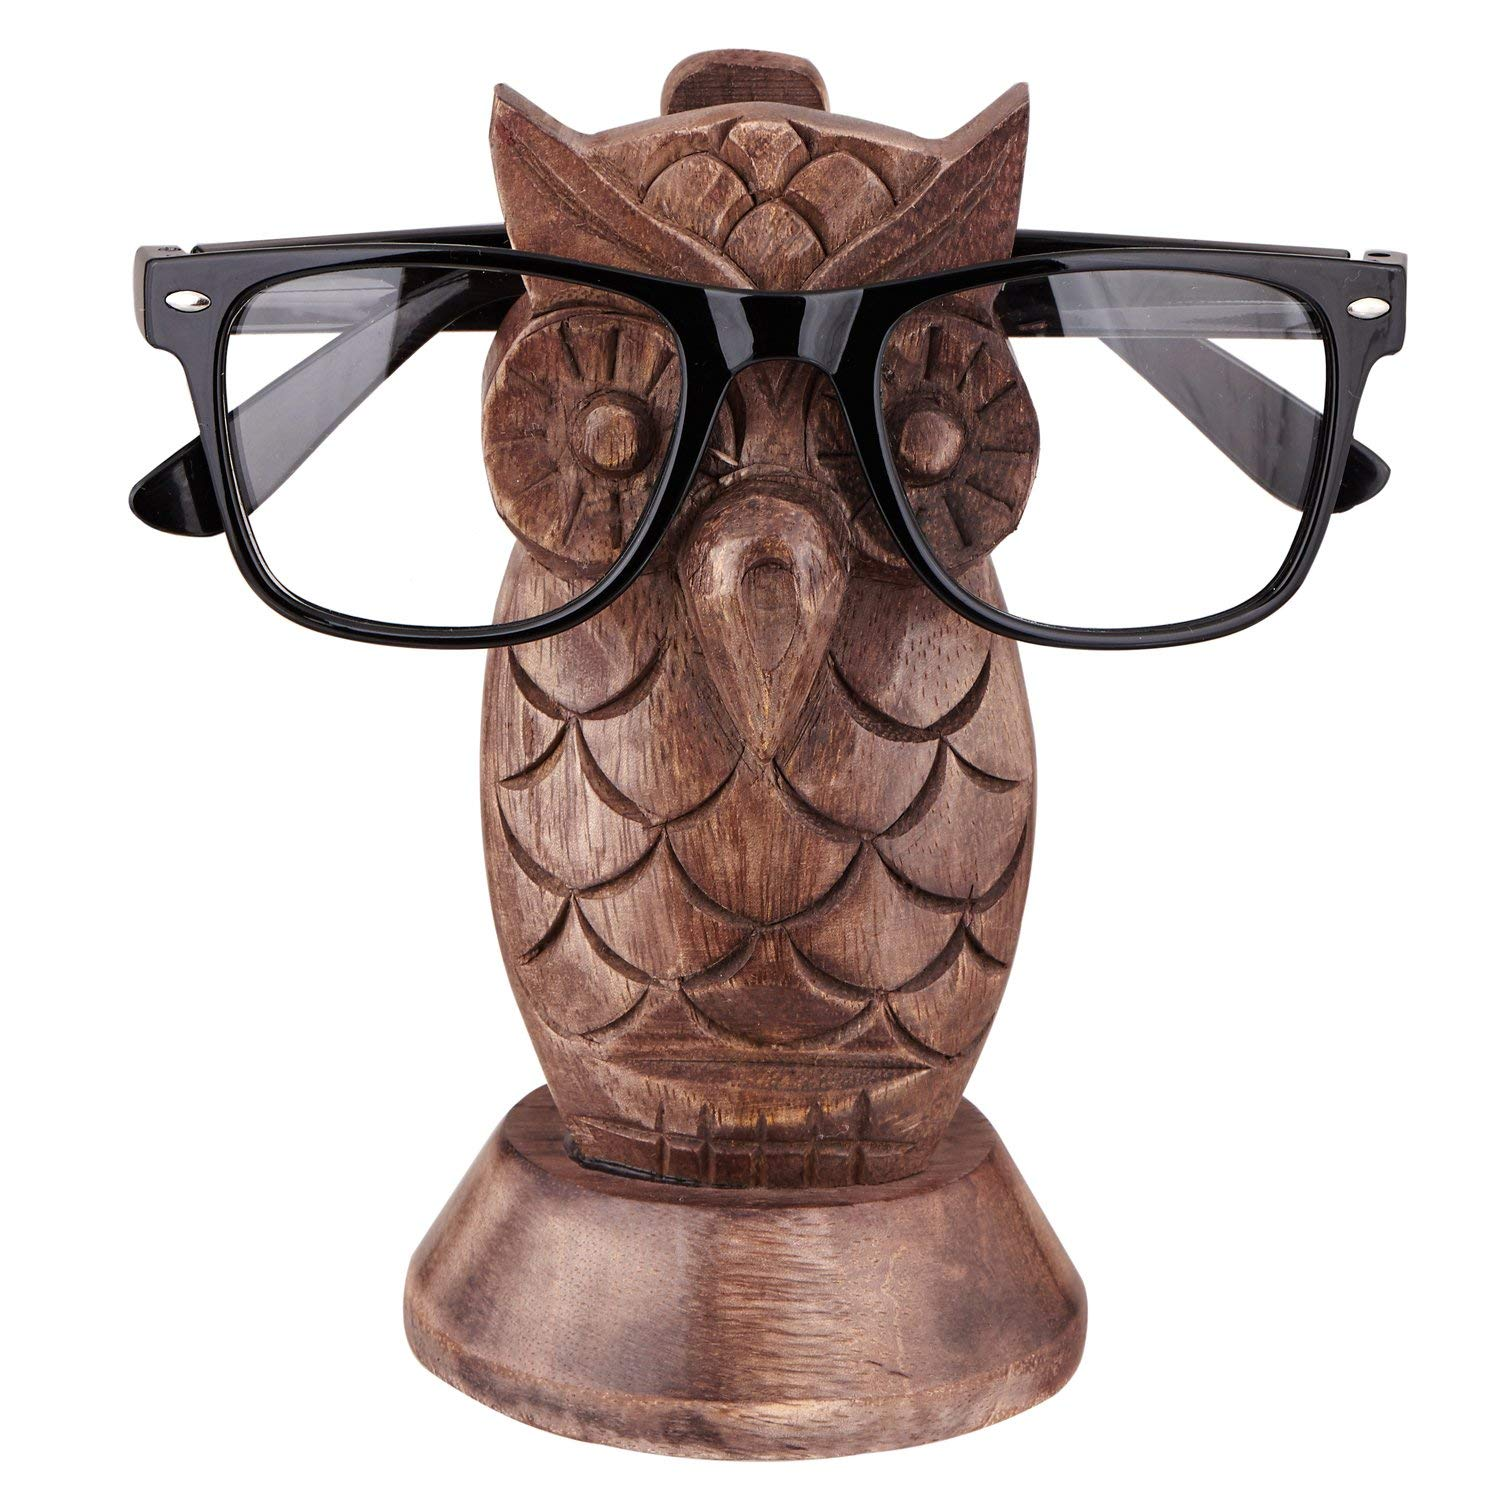 bb7cdbdfc81a Amazon.com  Crafkart Best Buy Owl Spectacle Holder Wooden Eyeglass Stand  Handmade Display Optical Glasses Accessories  Home   Kitchen